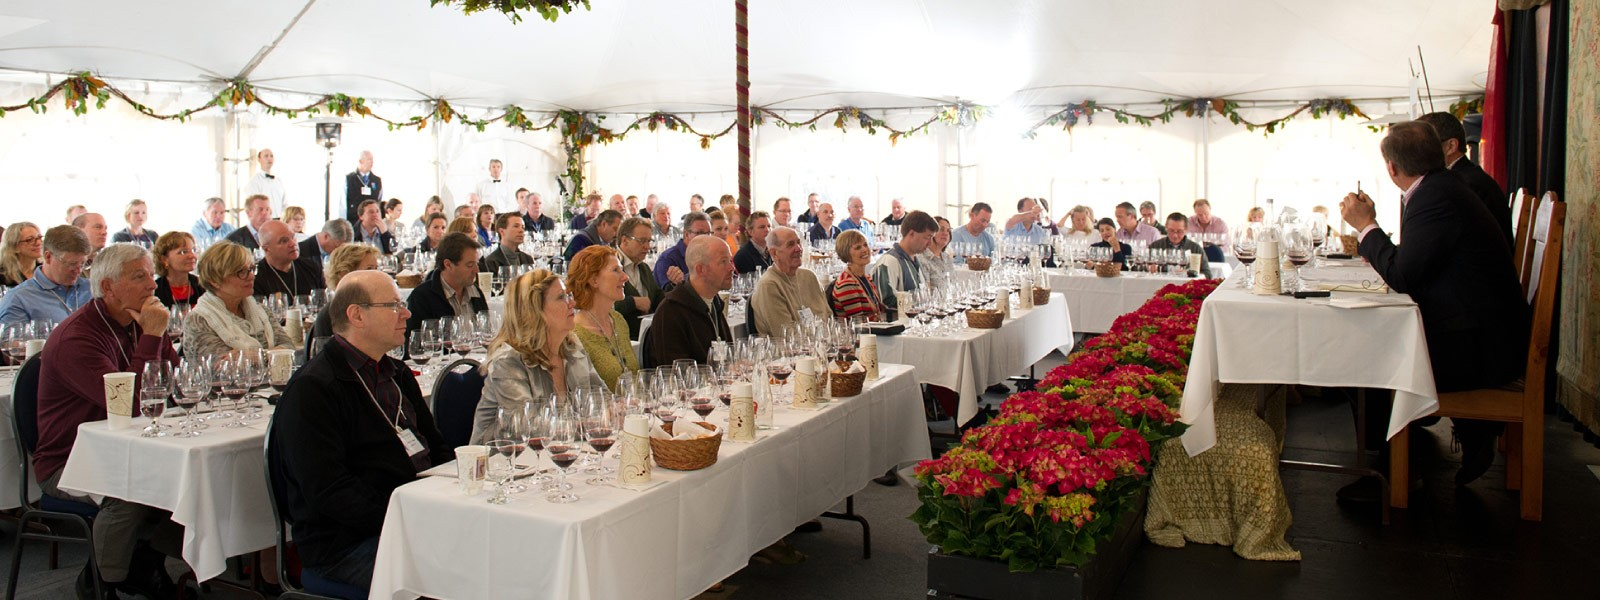 We Are Delighted To Announce That The Thirth Wine Summit Lake Louise Was A Smashing Success